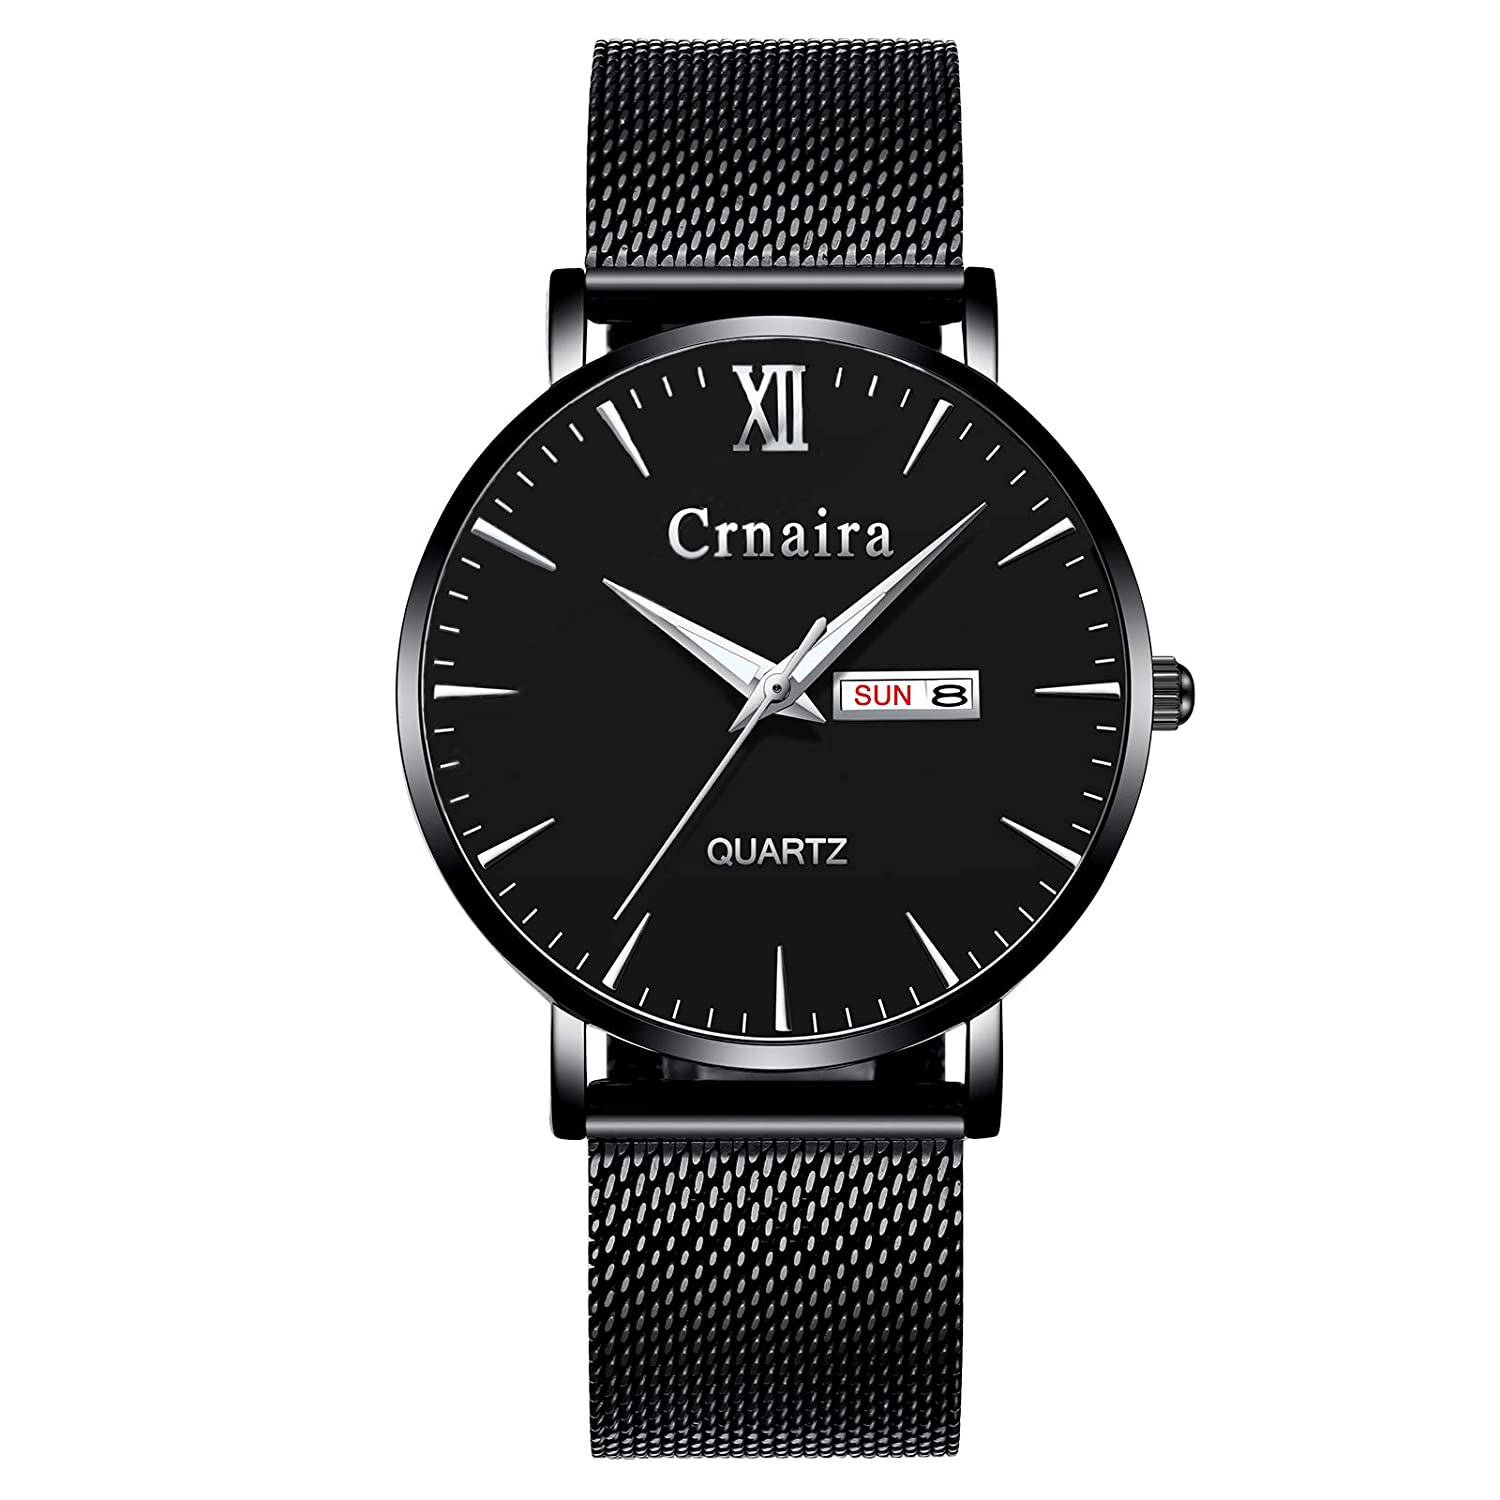 Led Dual Display Men Watch Most Popular Colors Sports Solar Steel Strap Quartz Wrist Watch For Lover Birthday Gift Ll Attractive Fashion Men's Watches